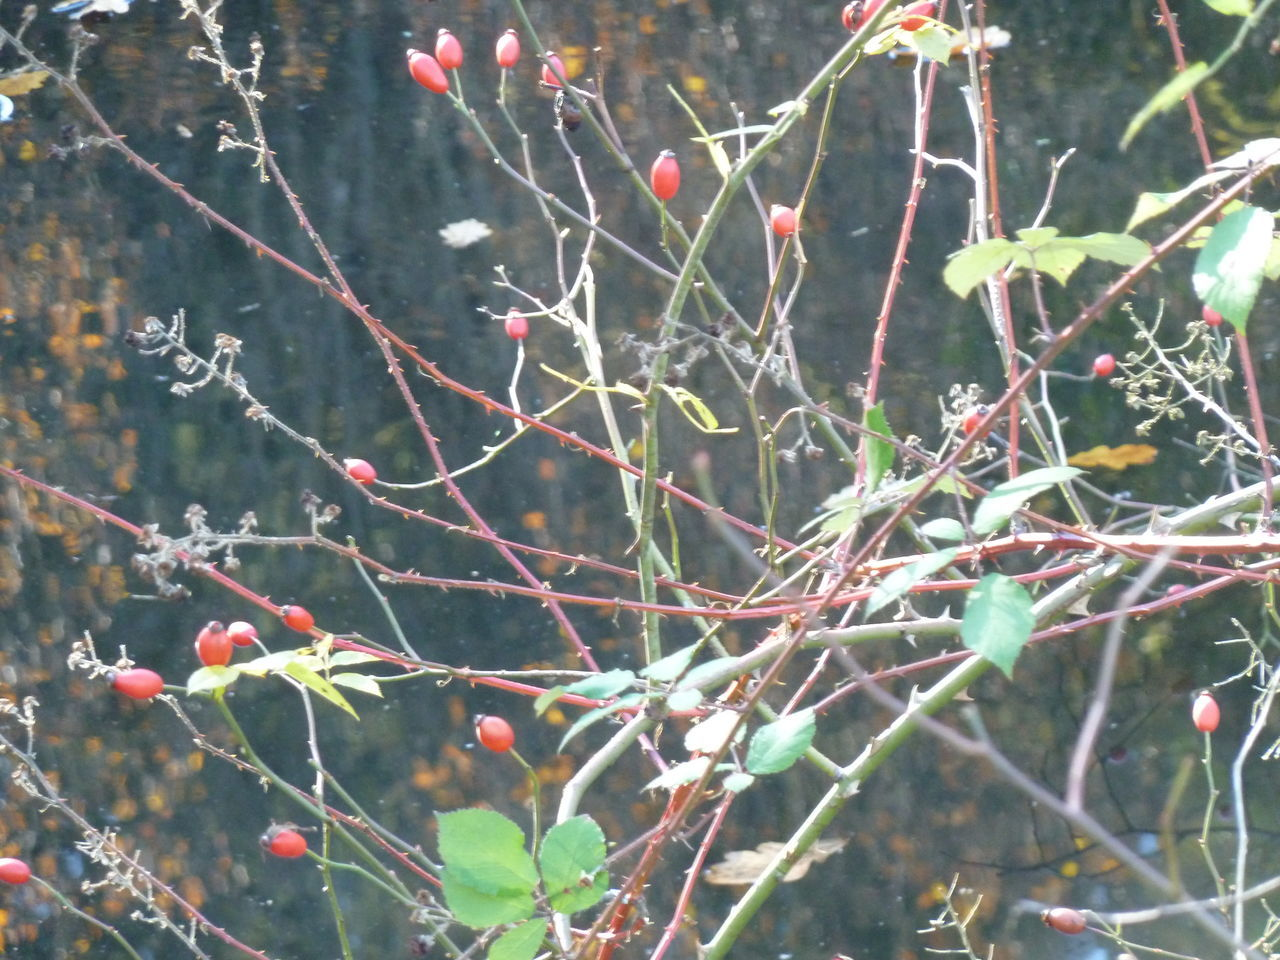 nature, day, tree, growth, branch, outdoors, no people, rose hip, twig, food and drink, fruit, beauty in nature, plant, close-up, freshness, food, winter, cold temperature